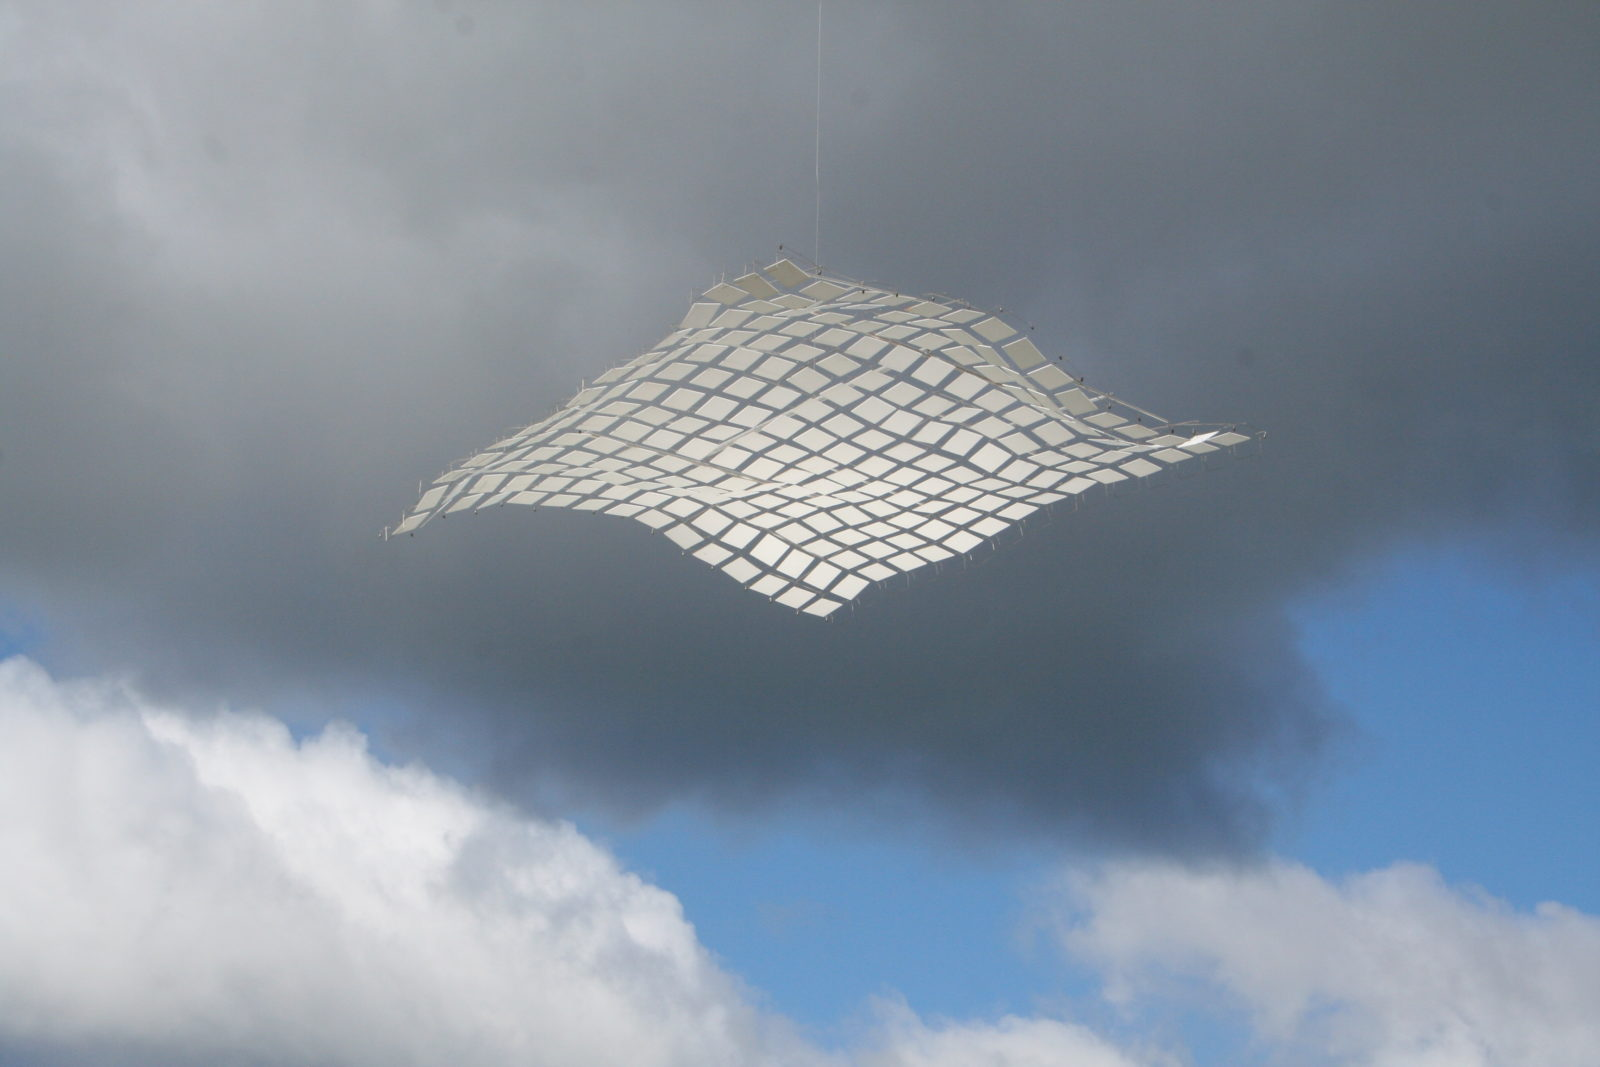 A kinetic sculpture that is like a floating carpet and posed against a stormy sky